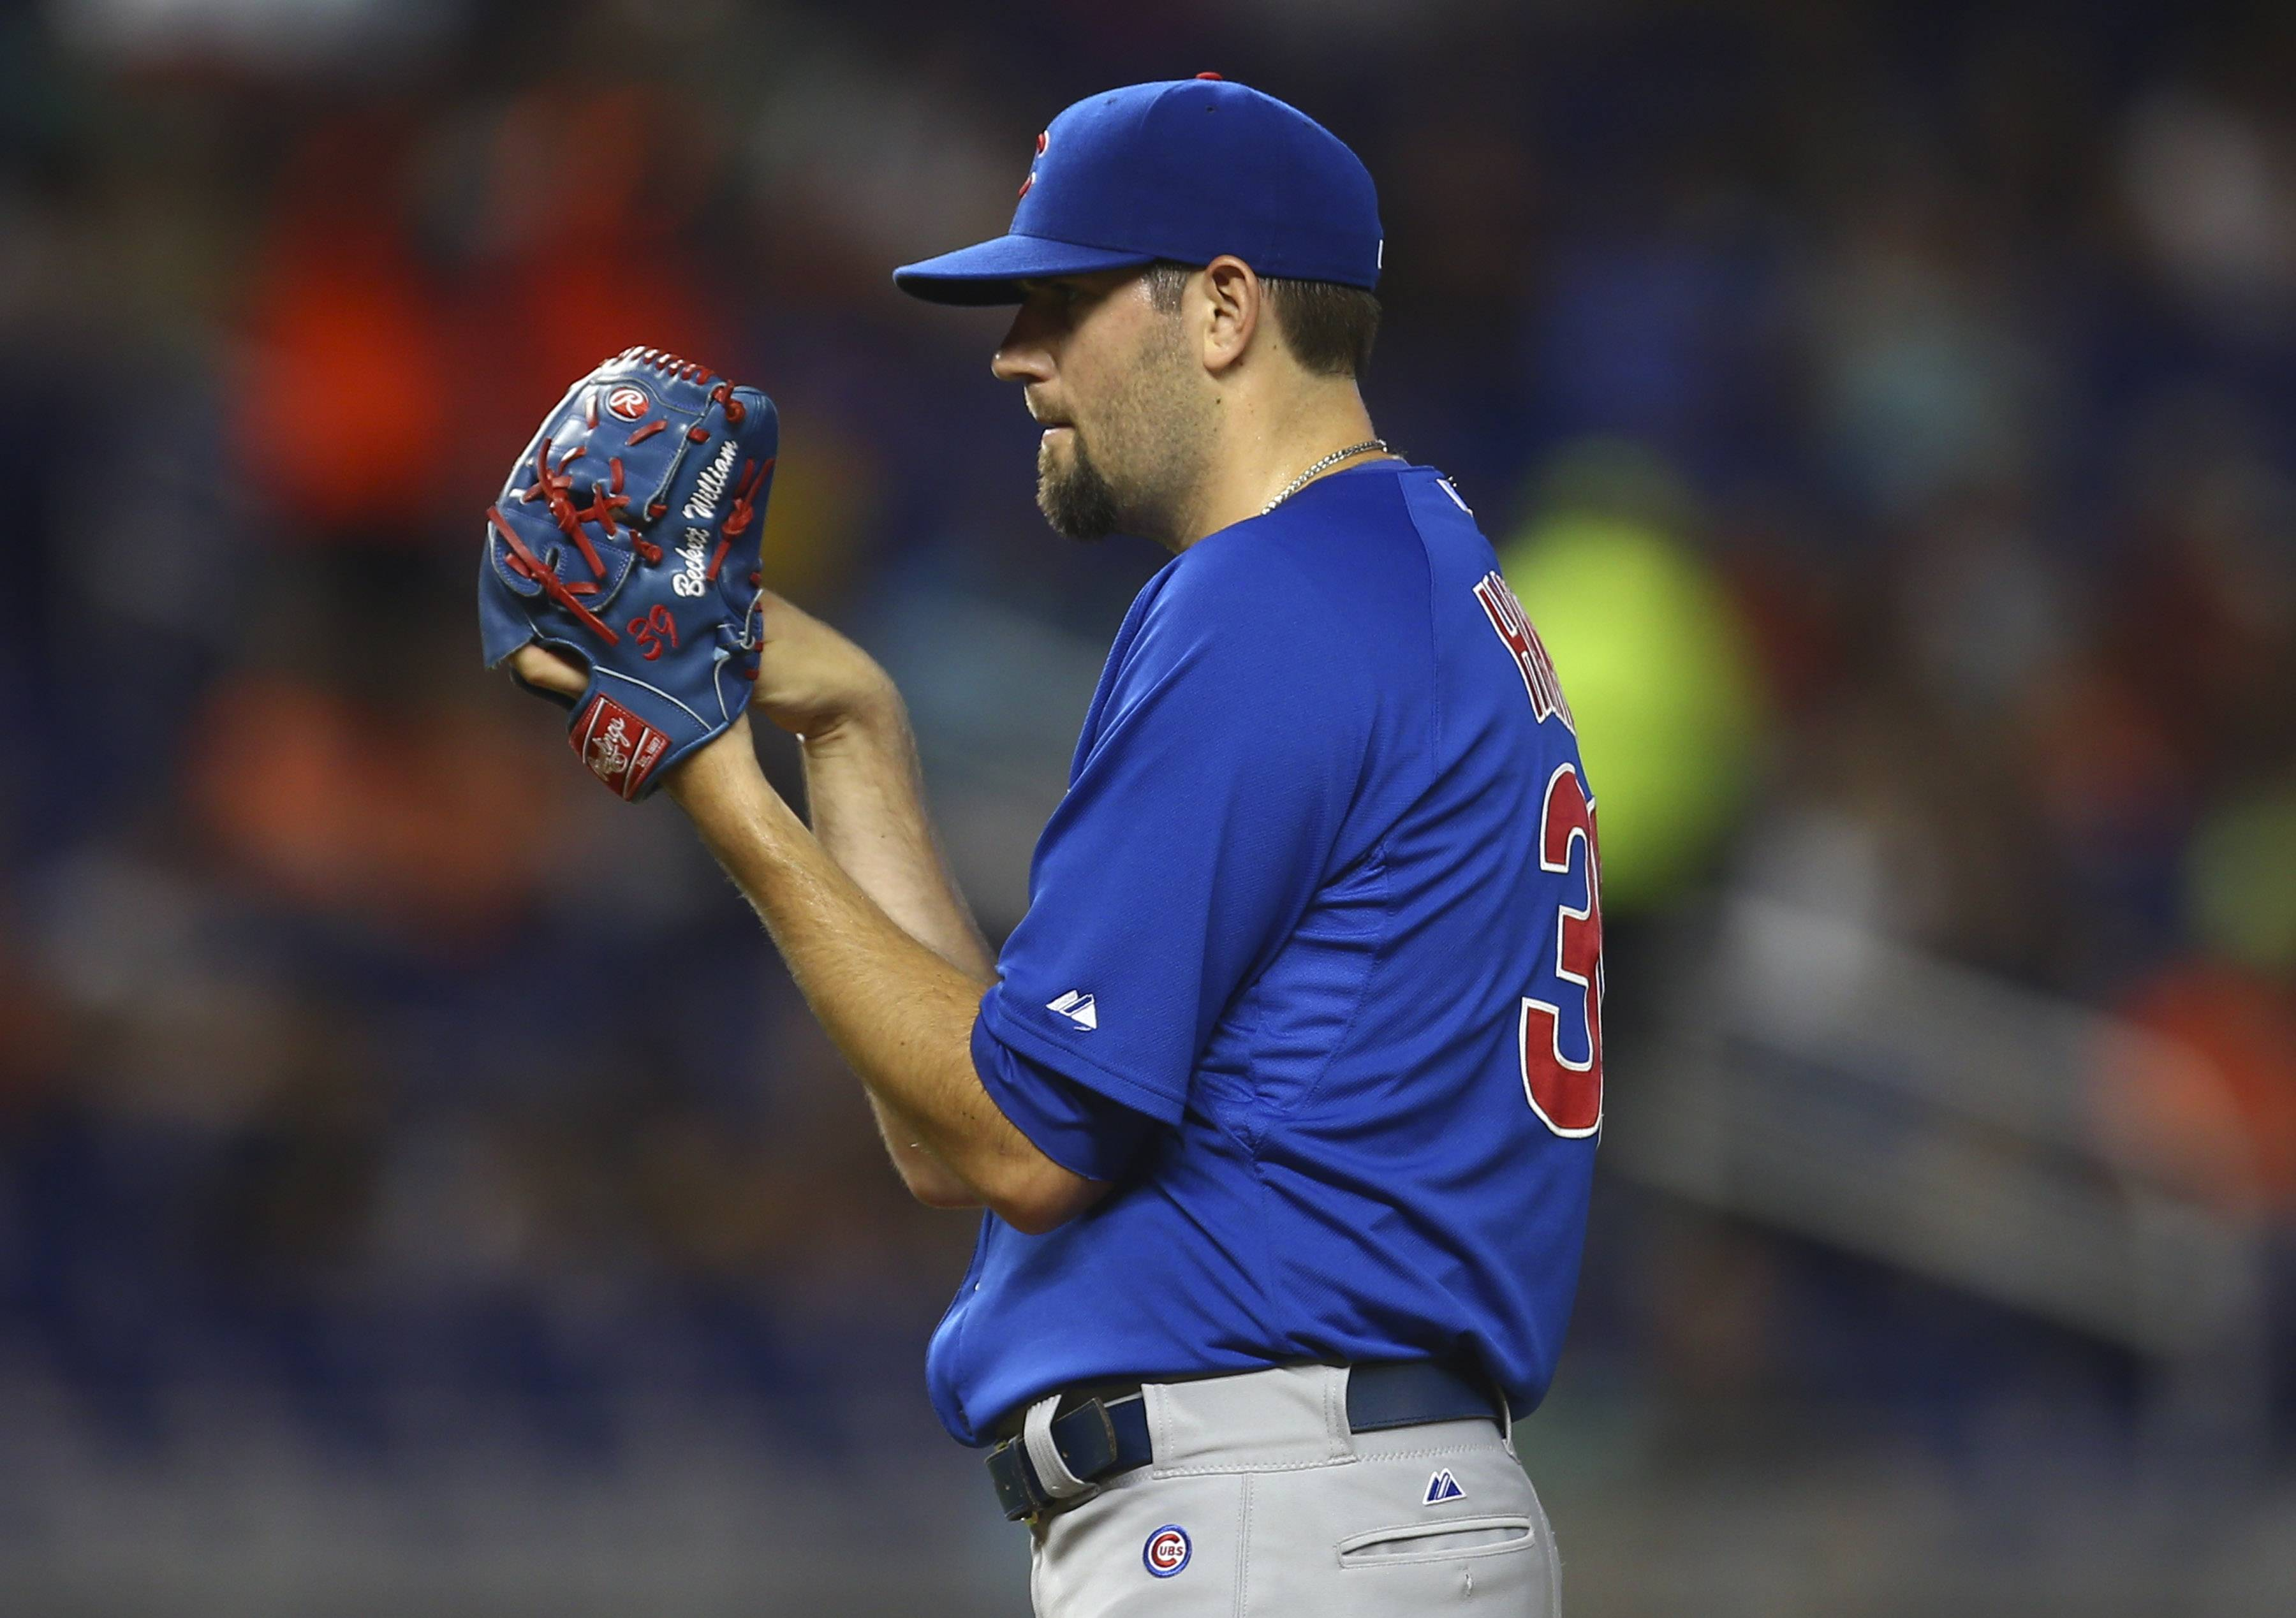 Cubs starter Jason Hammel worked 6 innings Monday night against the Marlins, giving up 4 runs on 8 hits.